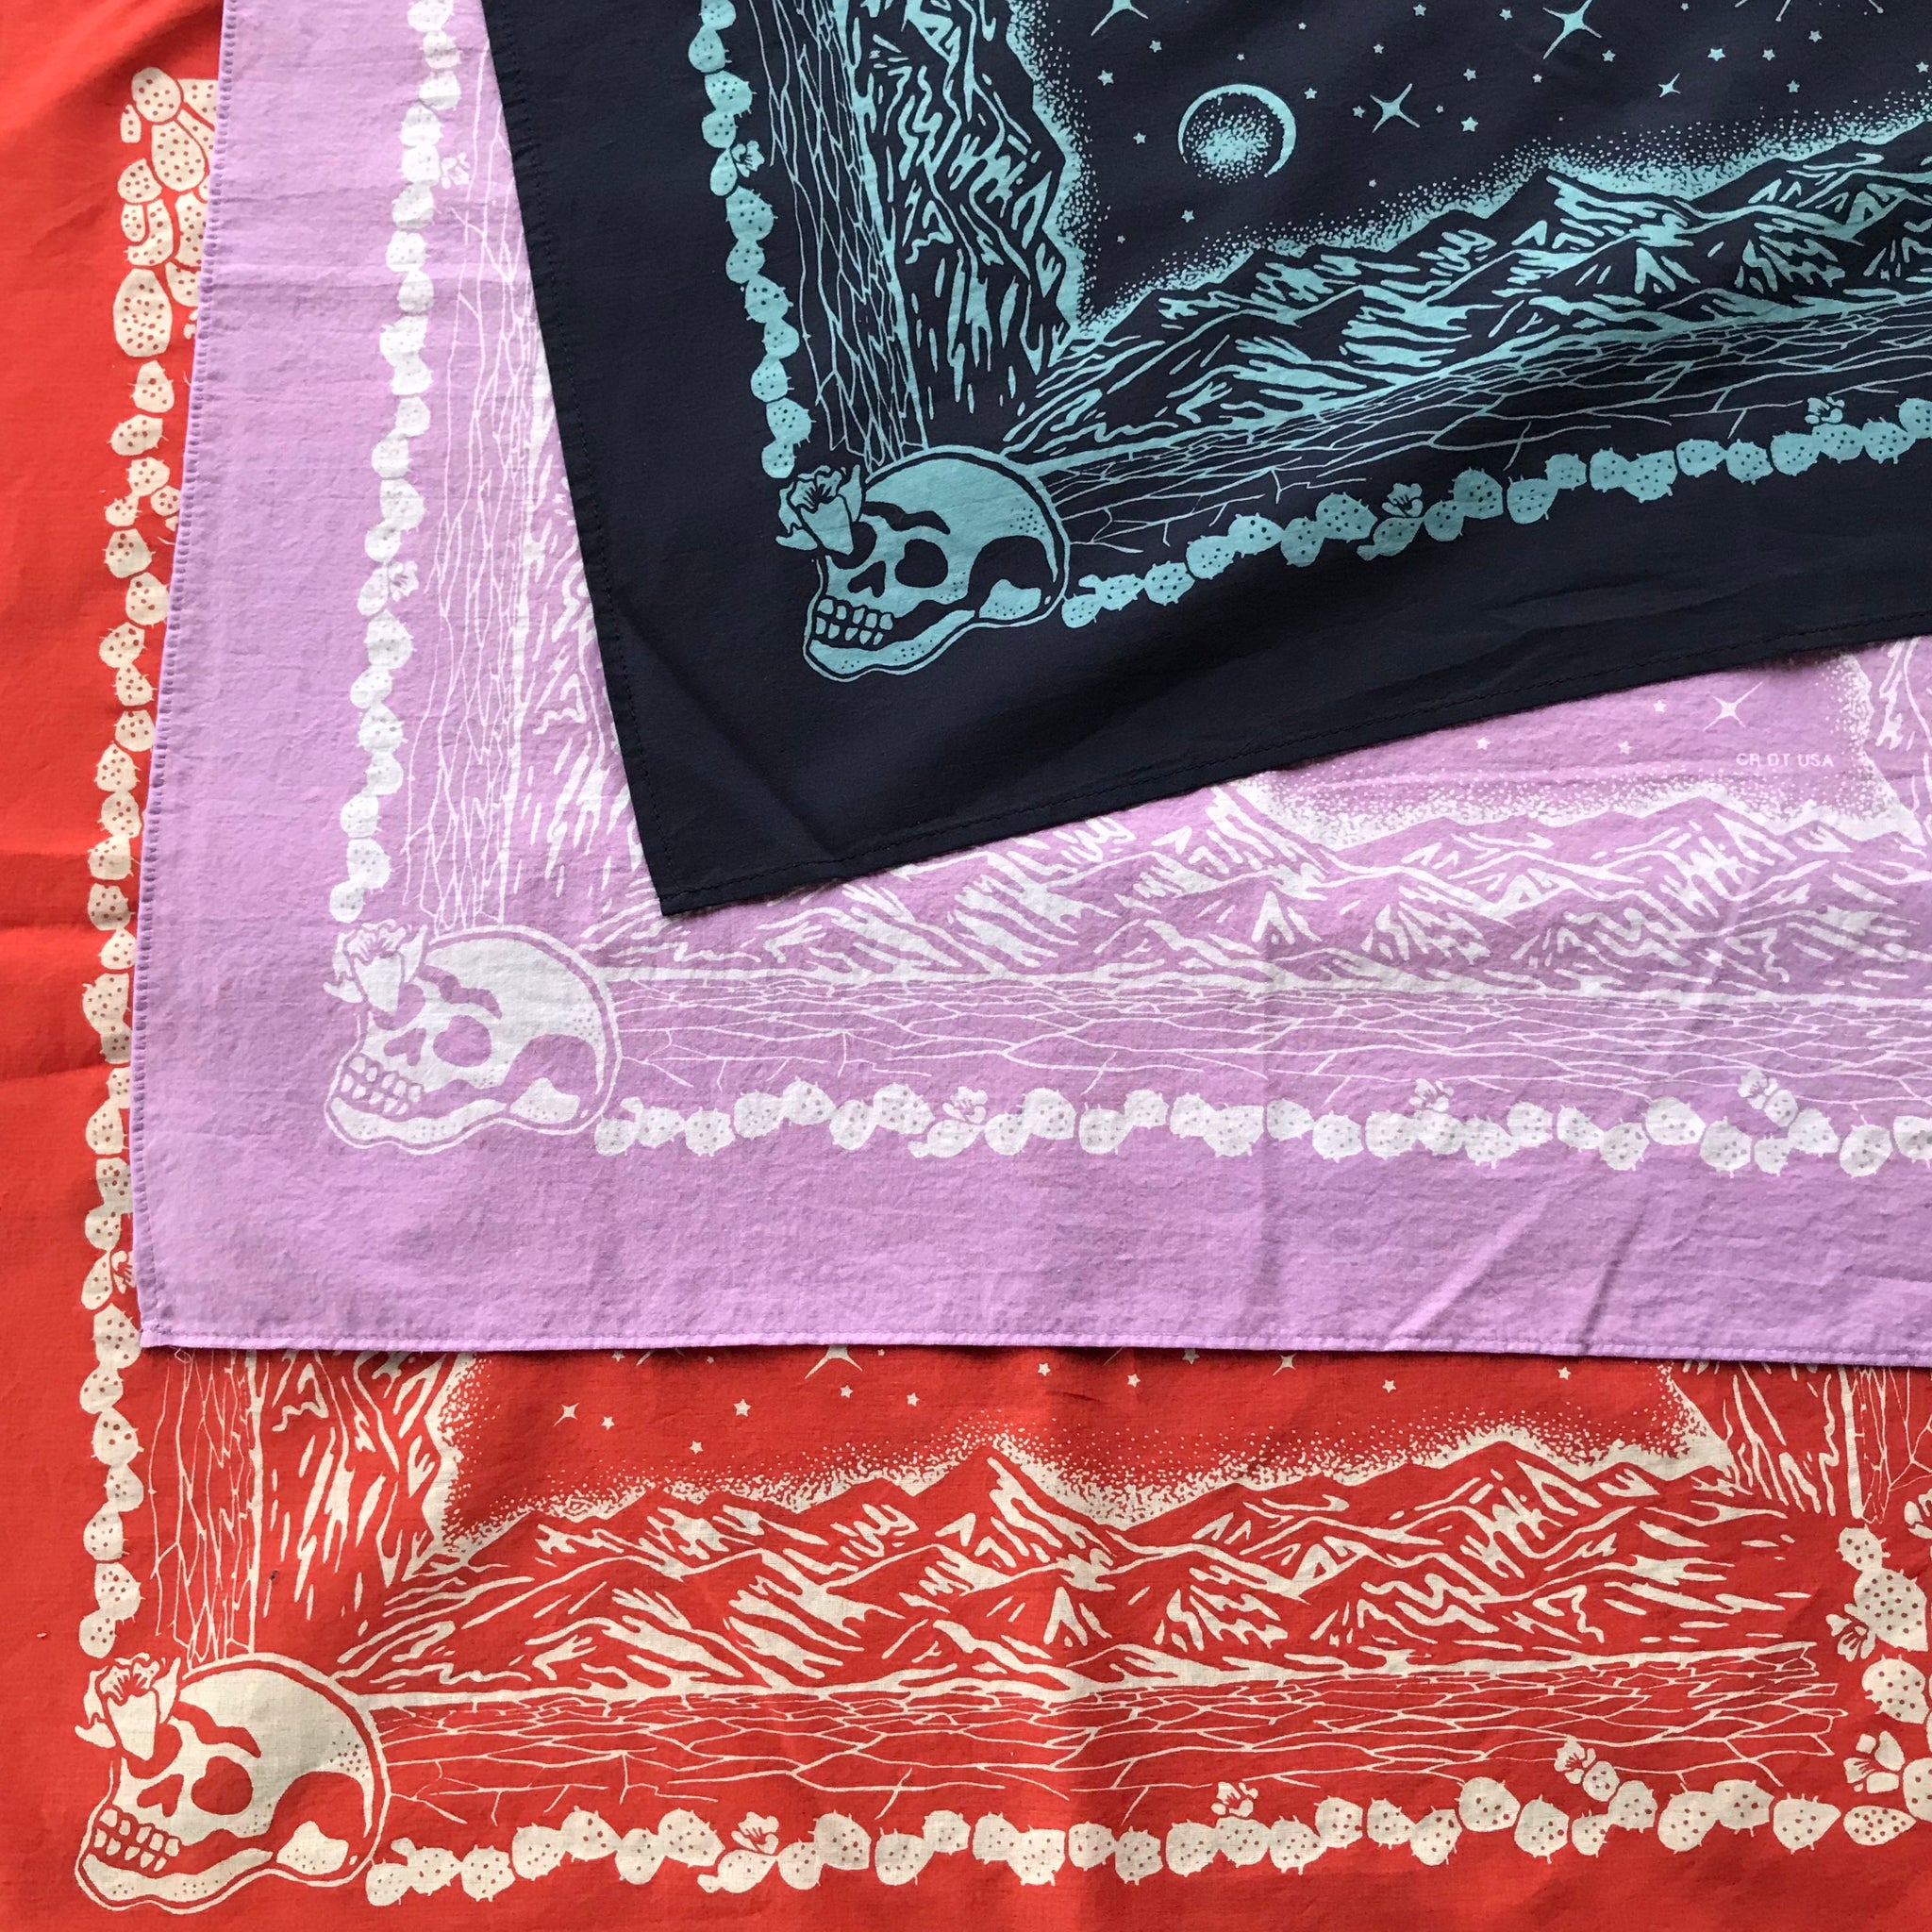 The Solitario Bandana - Limited Edition Colors